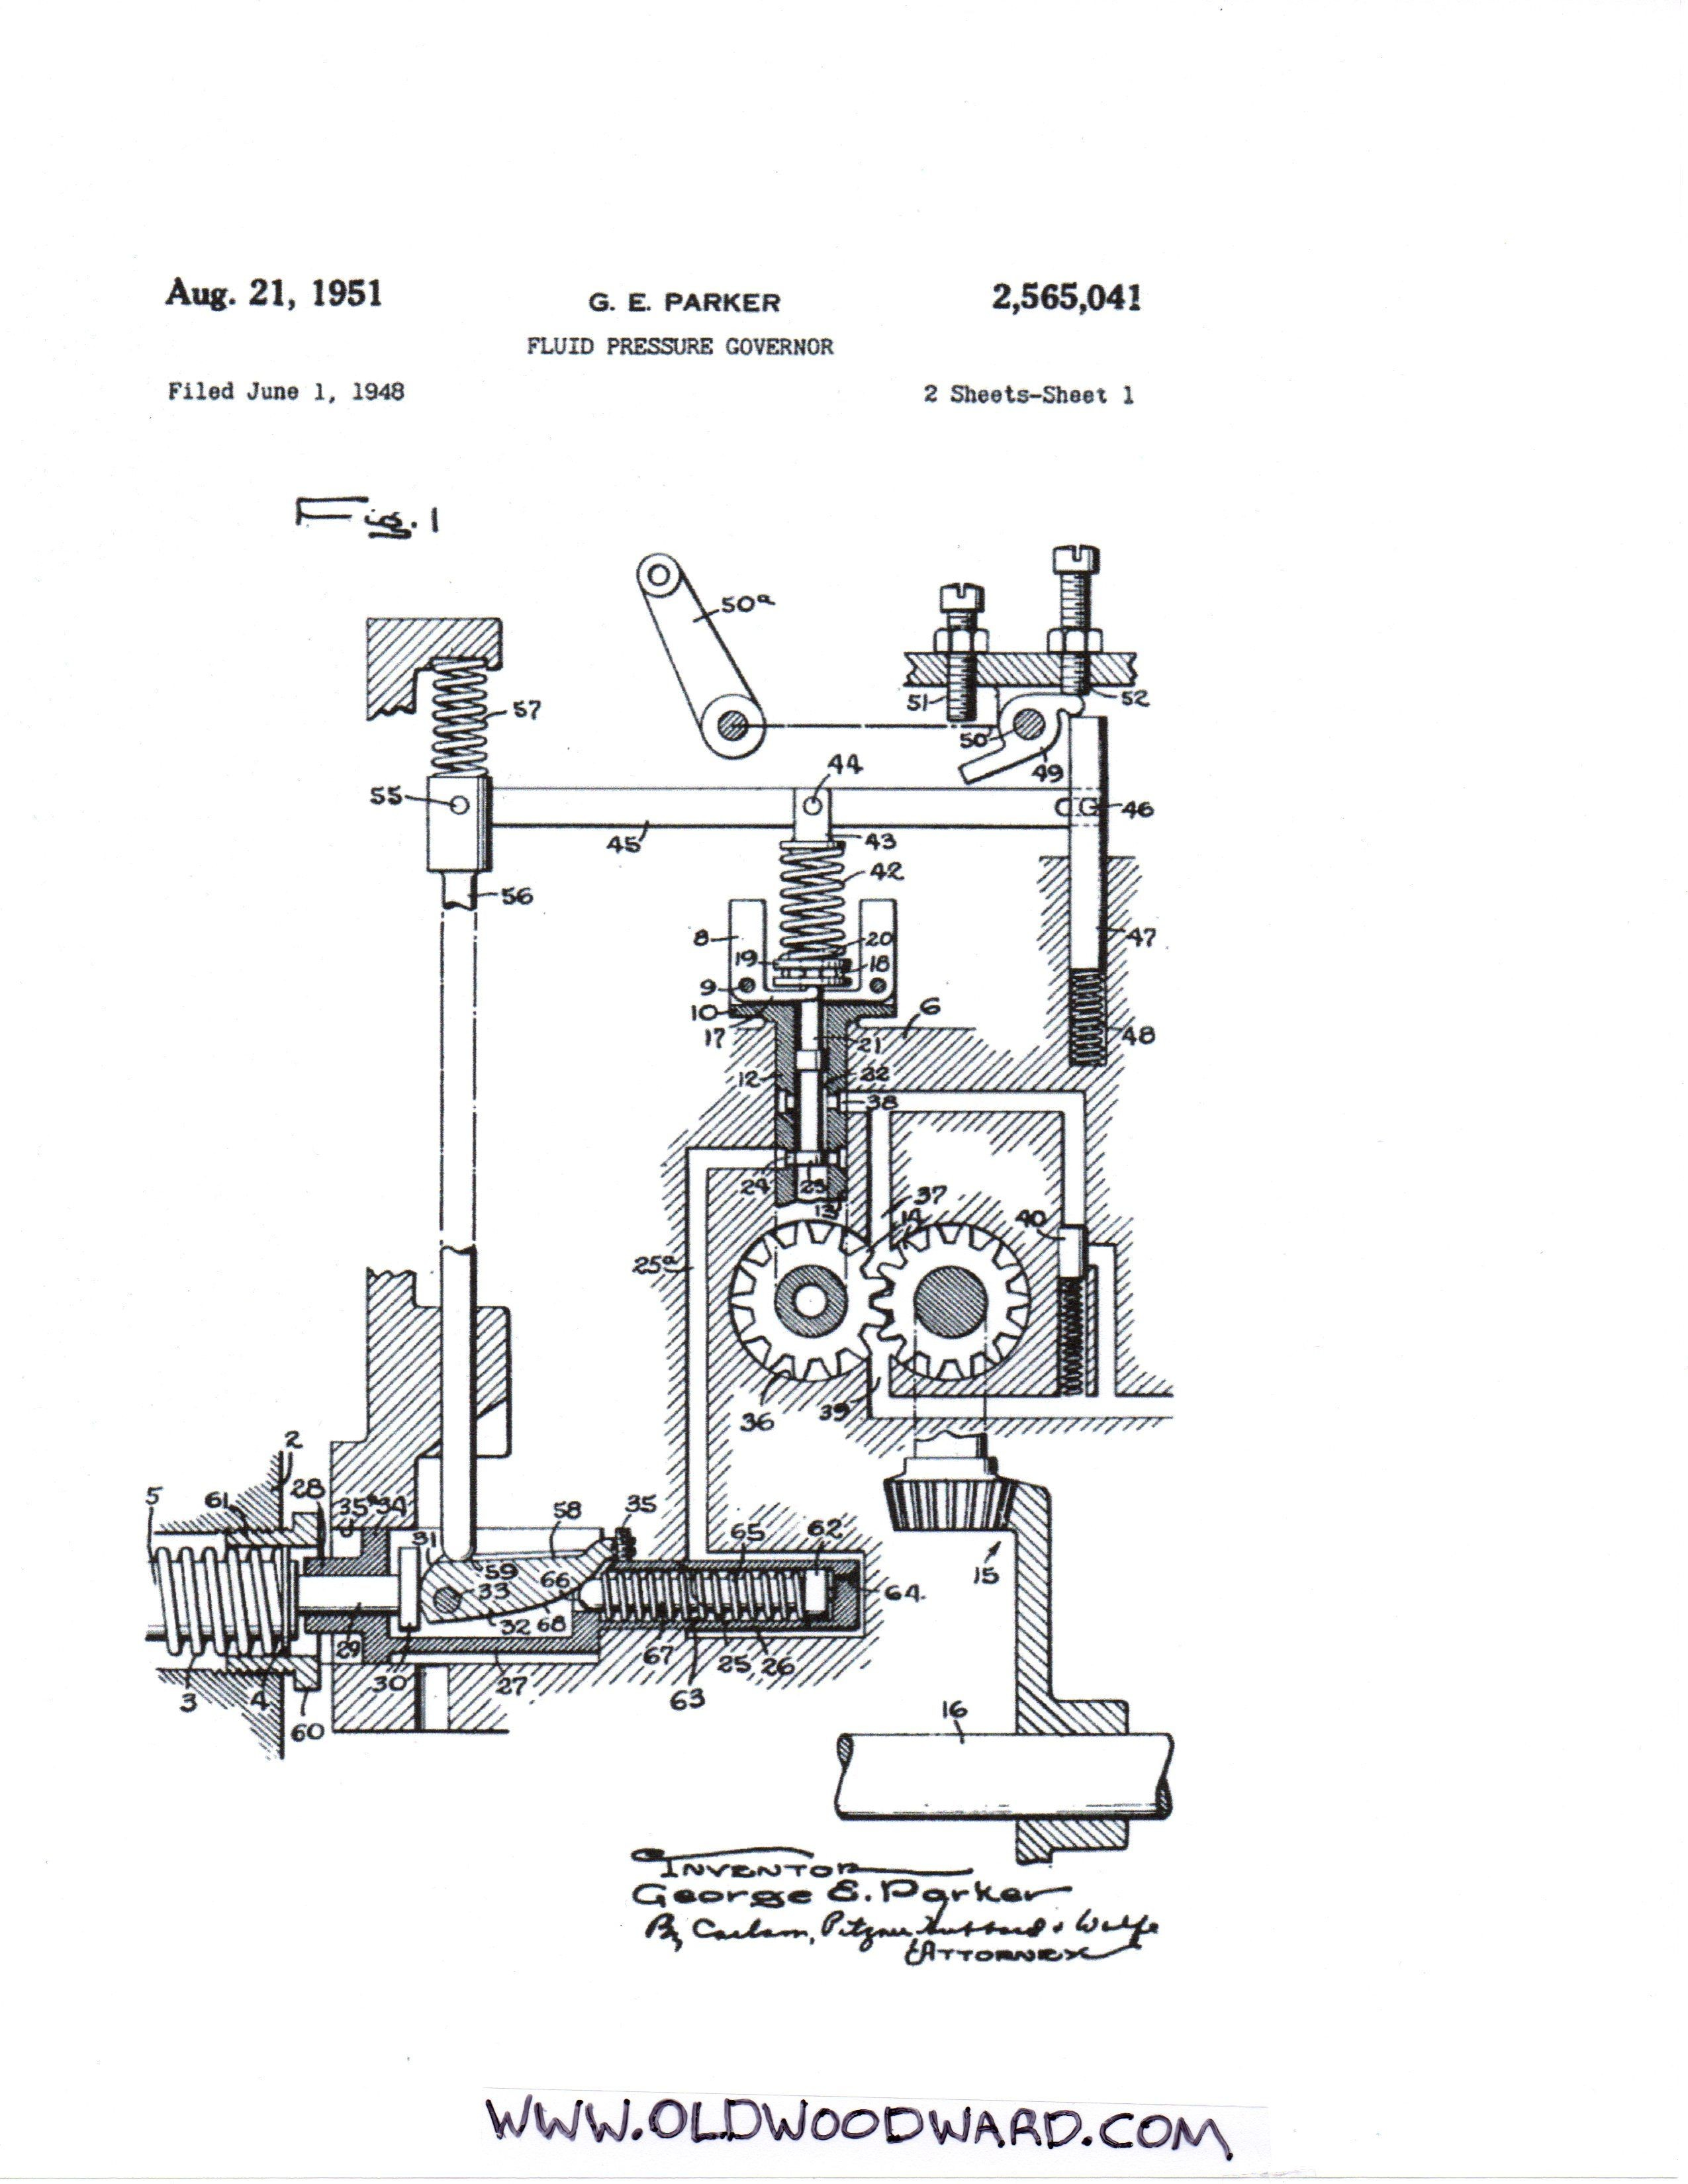 Diesel Engine Diagrams Pictures Woodward Type Pm Governor Patent Of Diesel Engine Diagrams Pictures